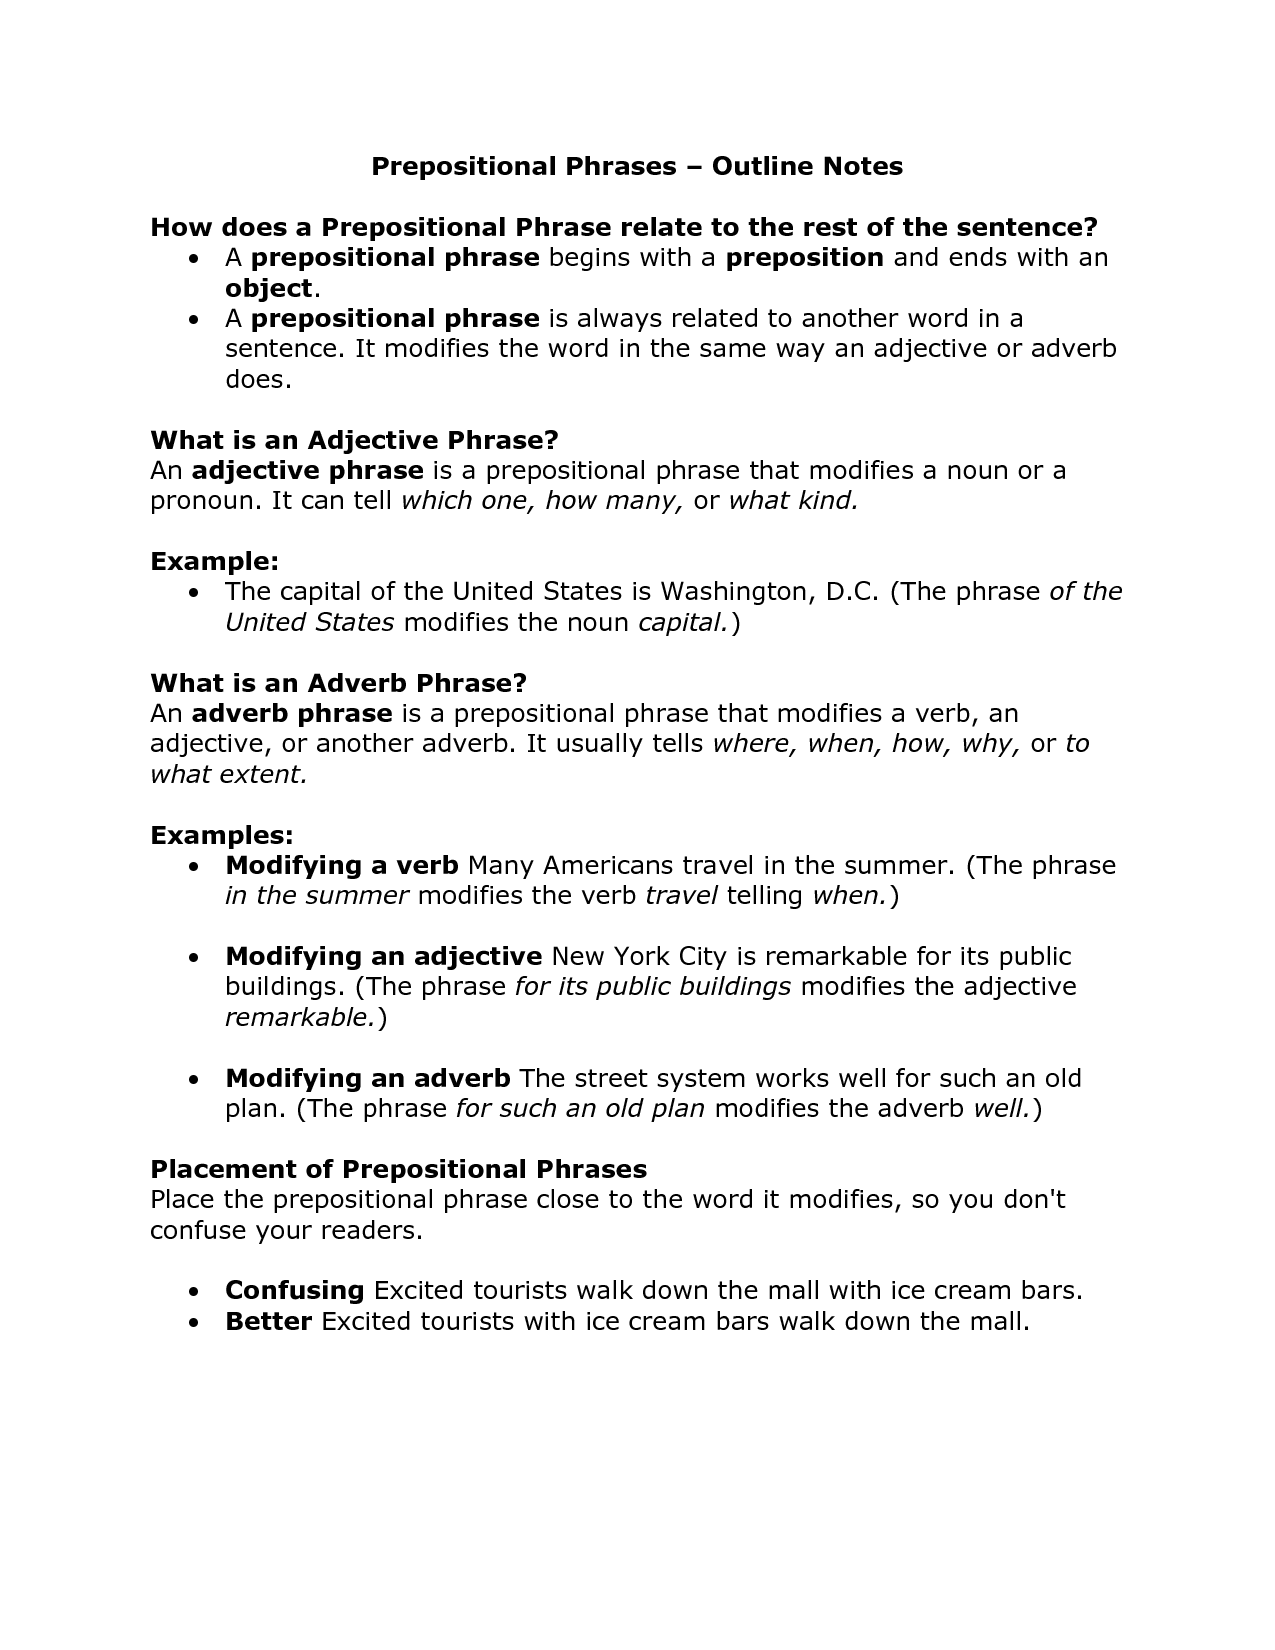 Prepositional Phrases Outline Notes | ELAR | Outline notes